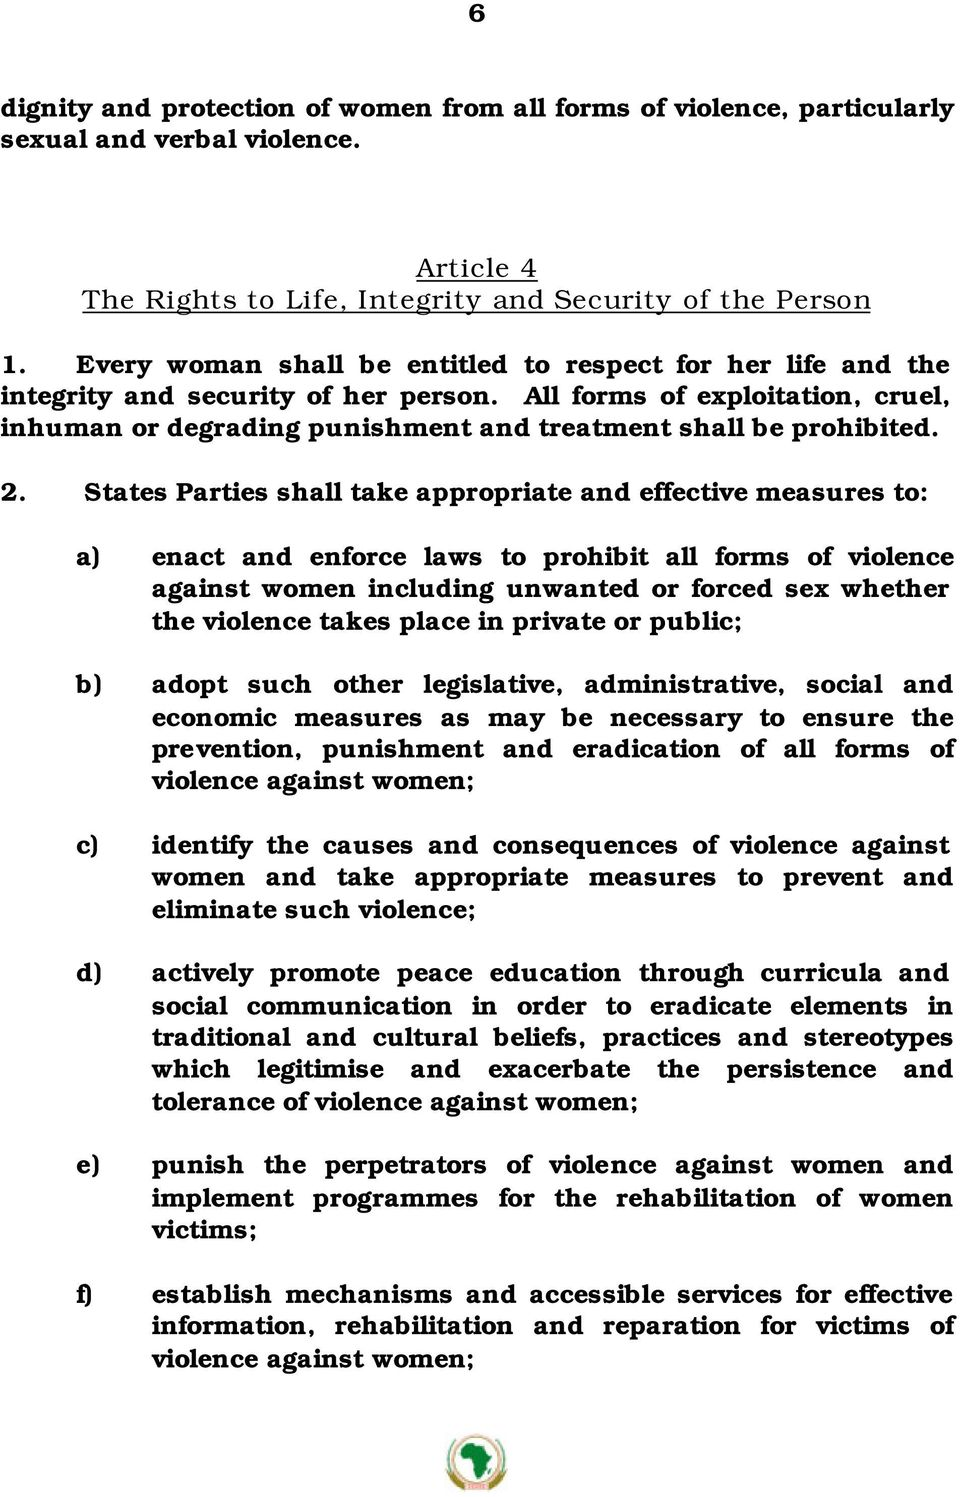 2. States Parties shall take appropriate and effective measures to: a) enact and enforce laws to prohibit all forms of violence against women including unwanted or forced sex whether the violence